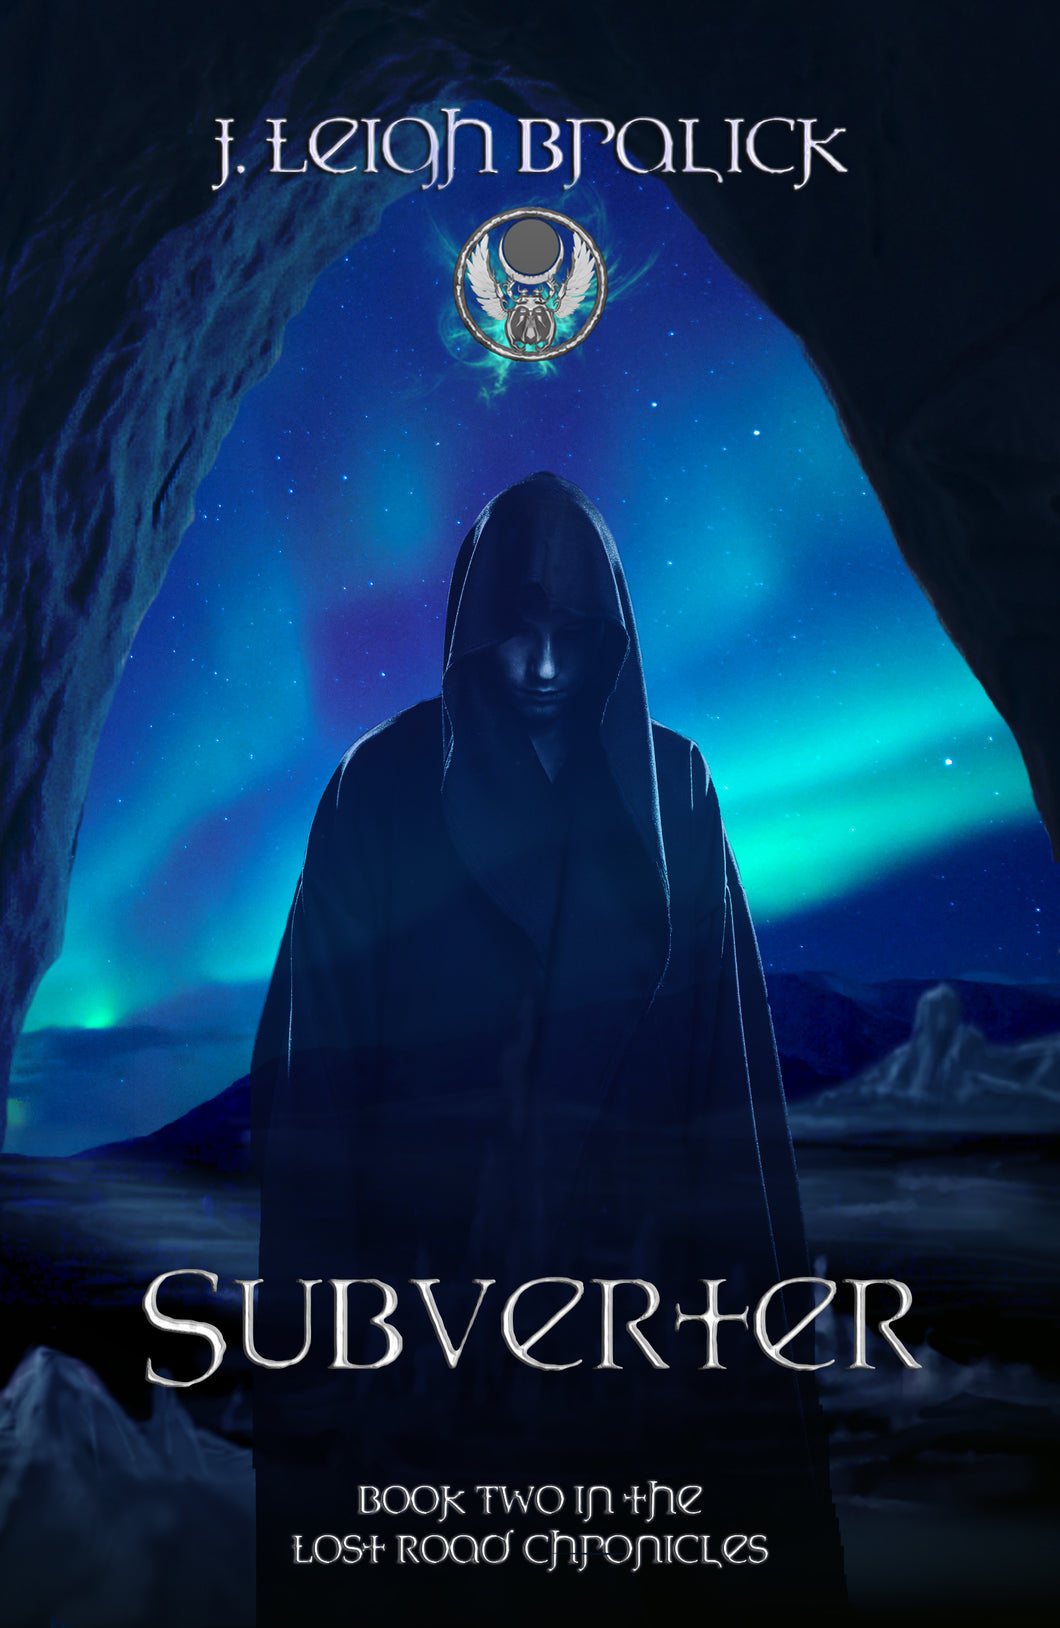 Subverter (Lost Road Chronicles #2)